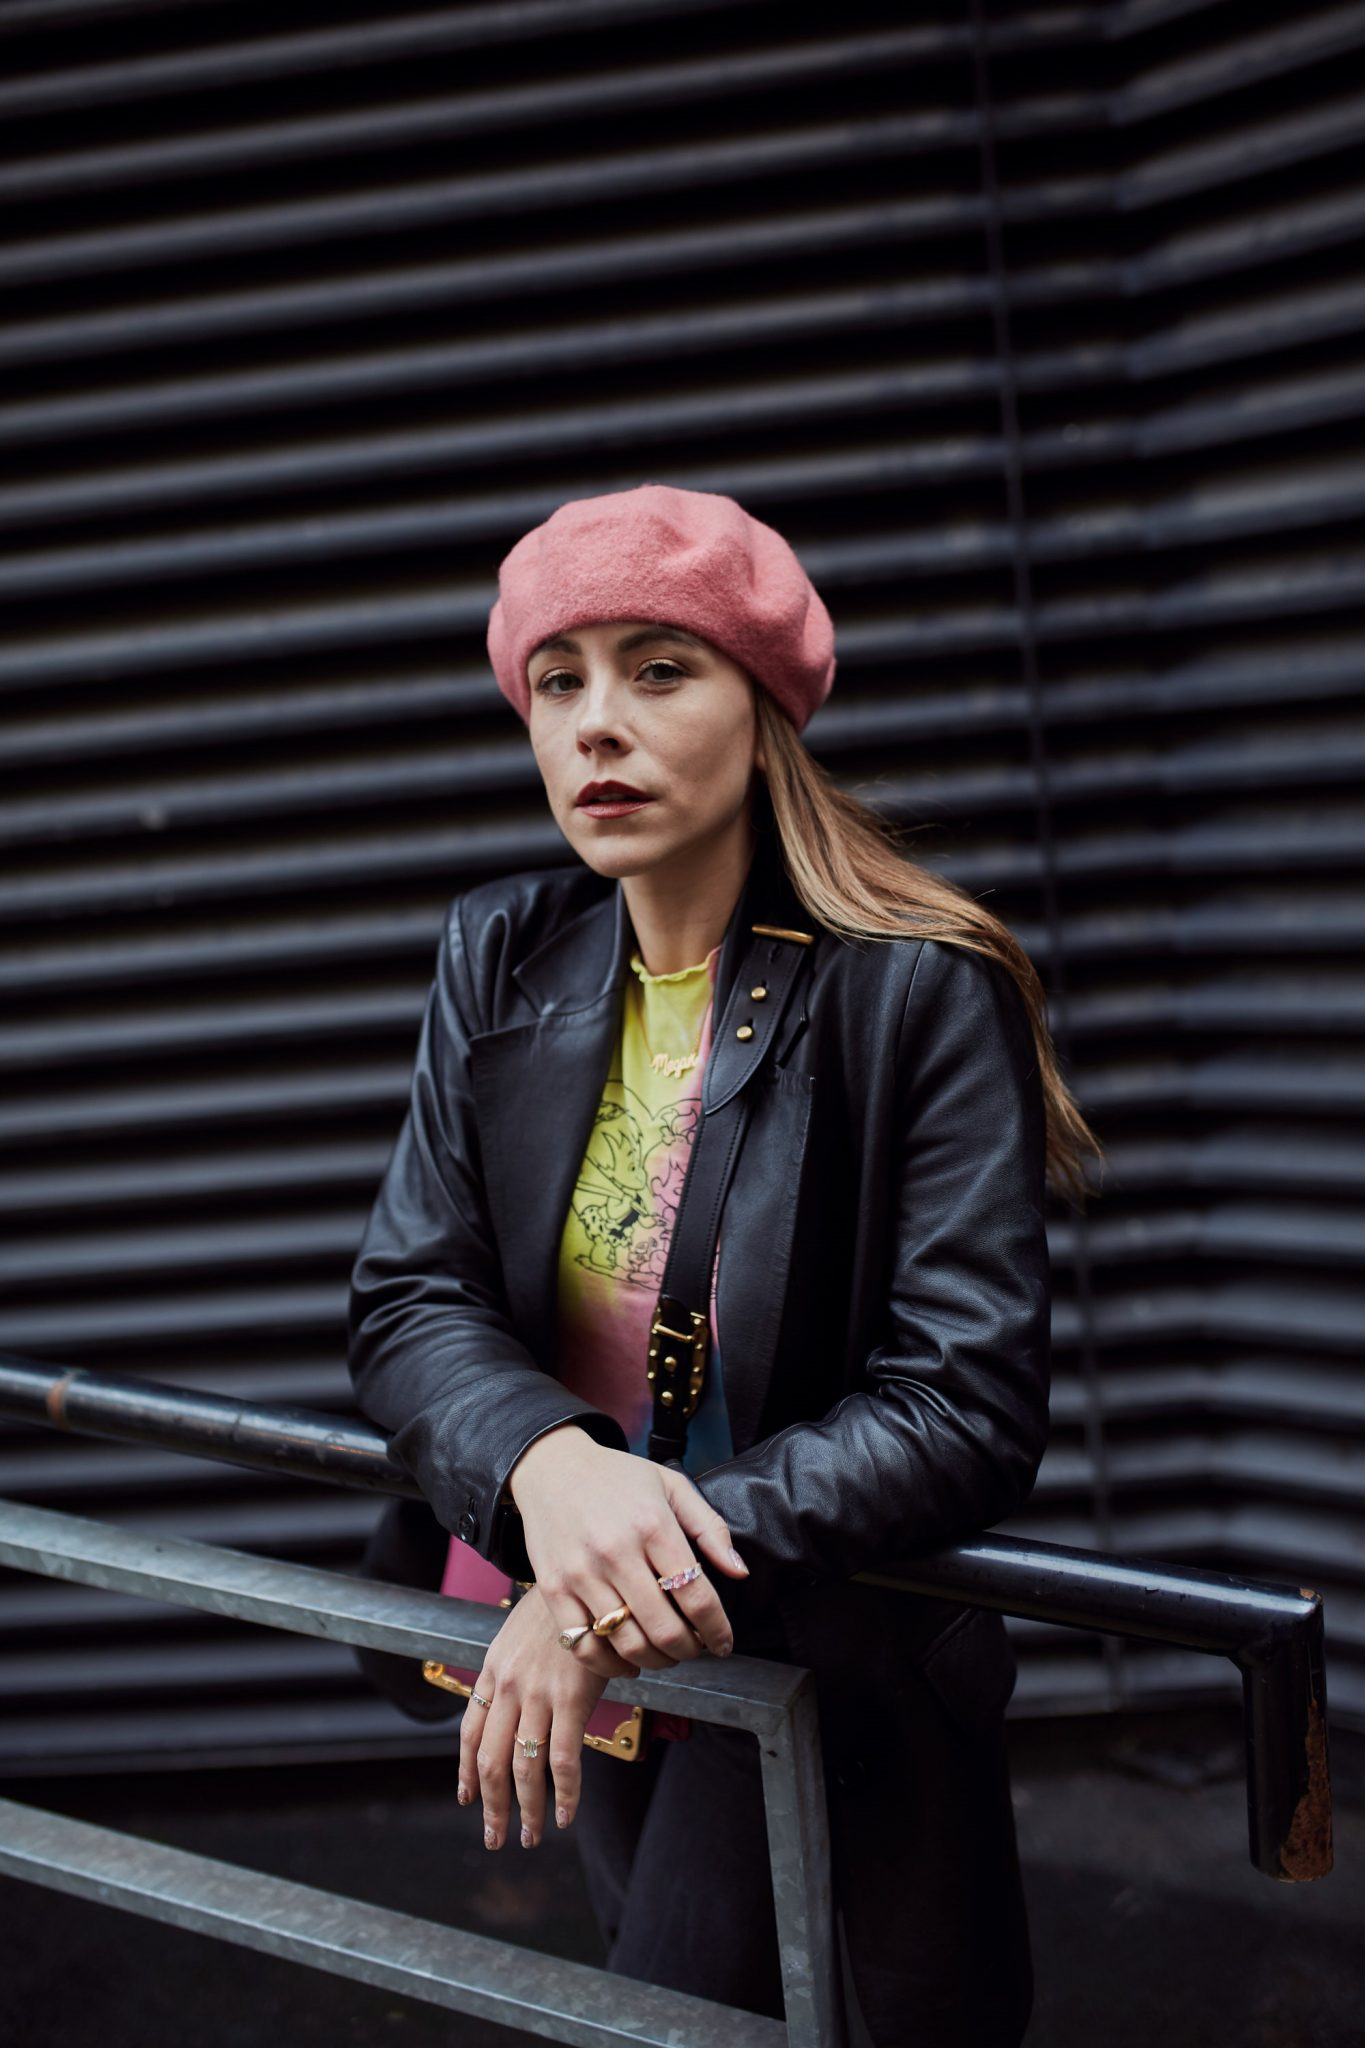 STYLING A BERET